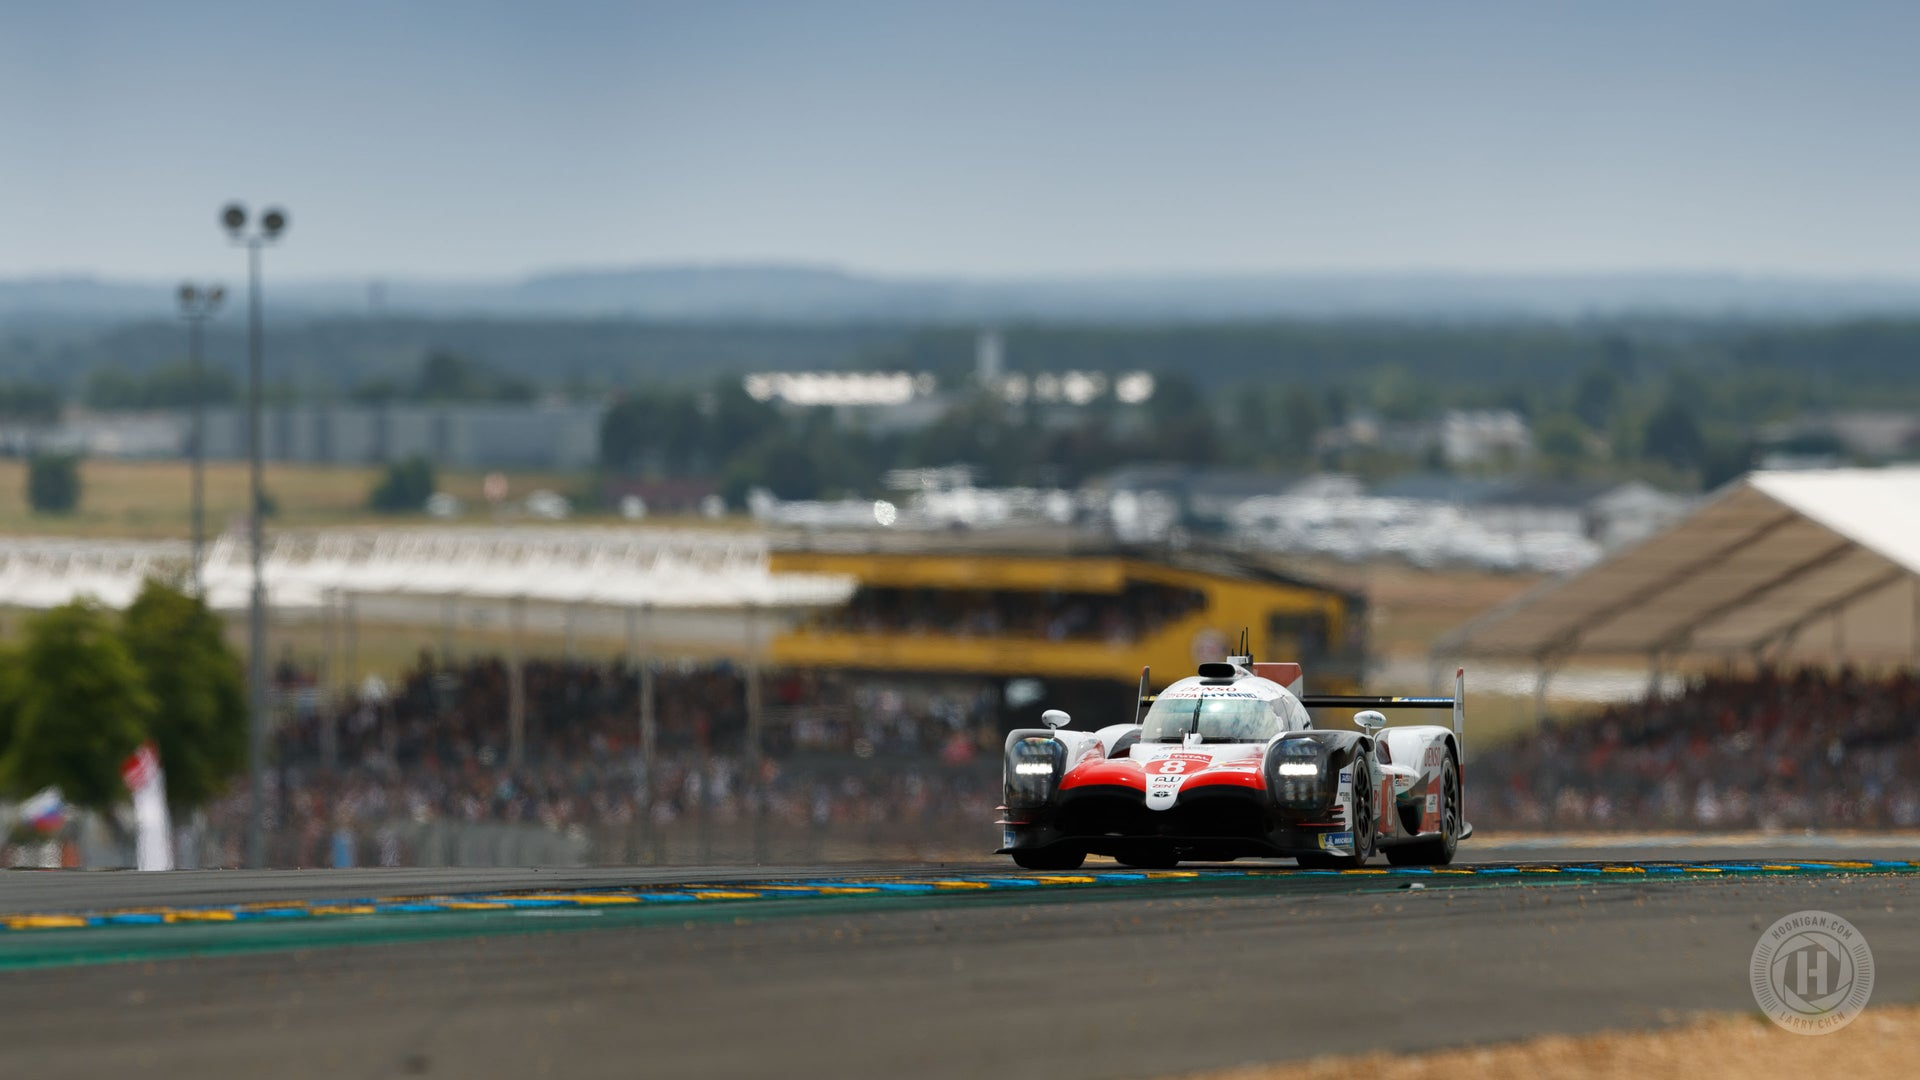 A Study in Perseverance: Toyota Finally Gets Its Le Mans Victory